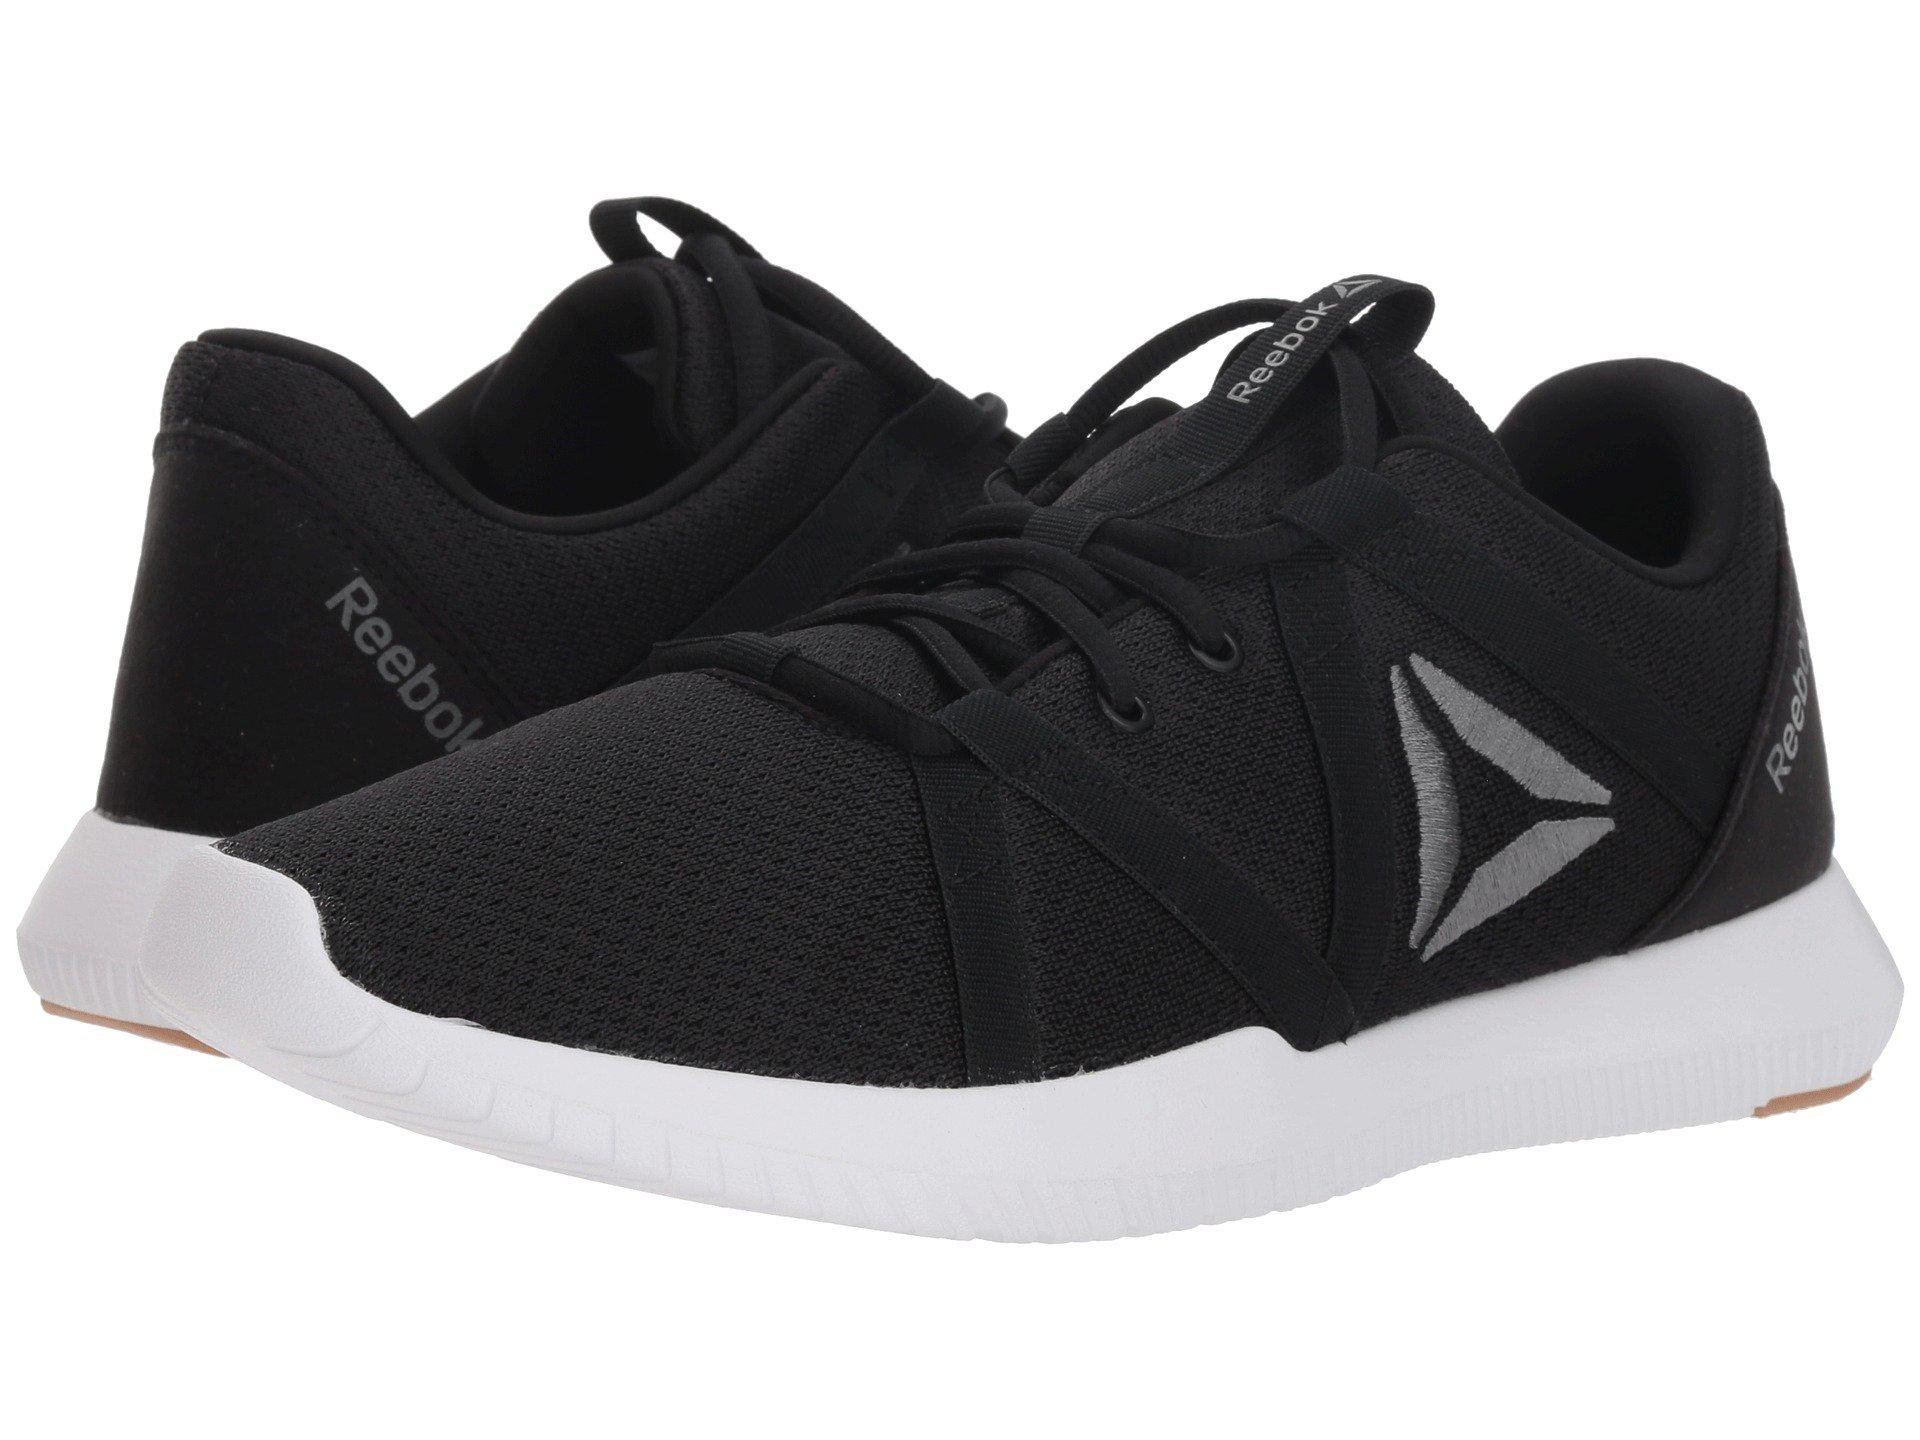 5afb23e76dc4 Lyst - Reebok Reago Essential in Black for Men - Save 36%